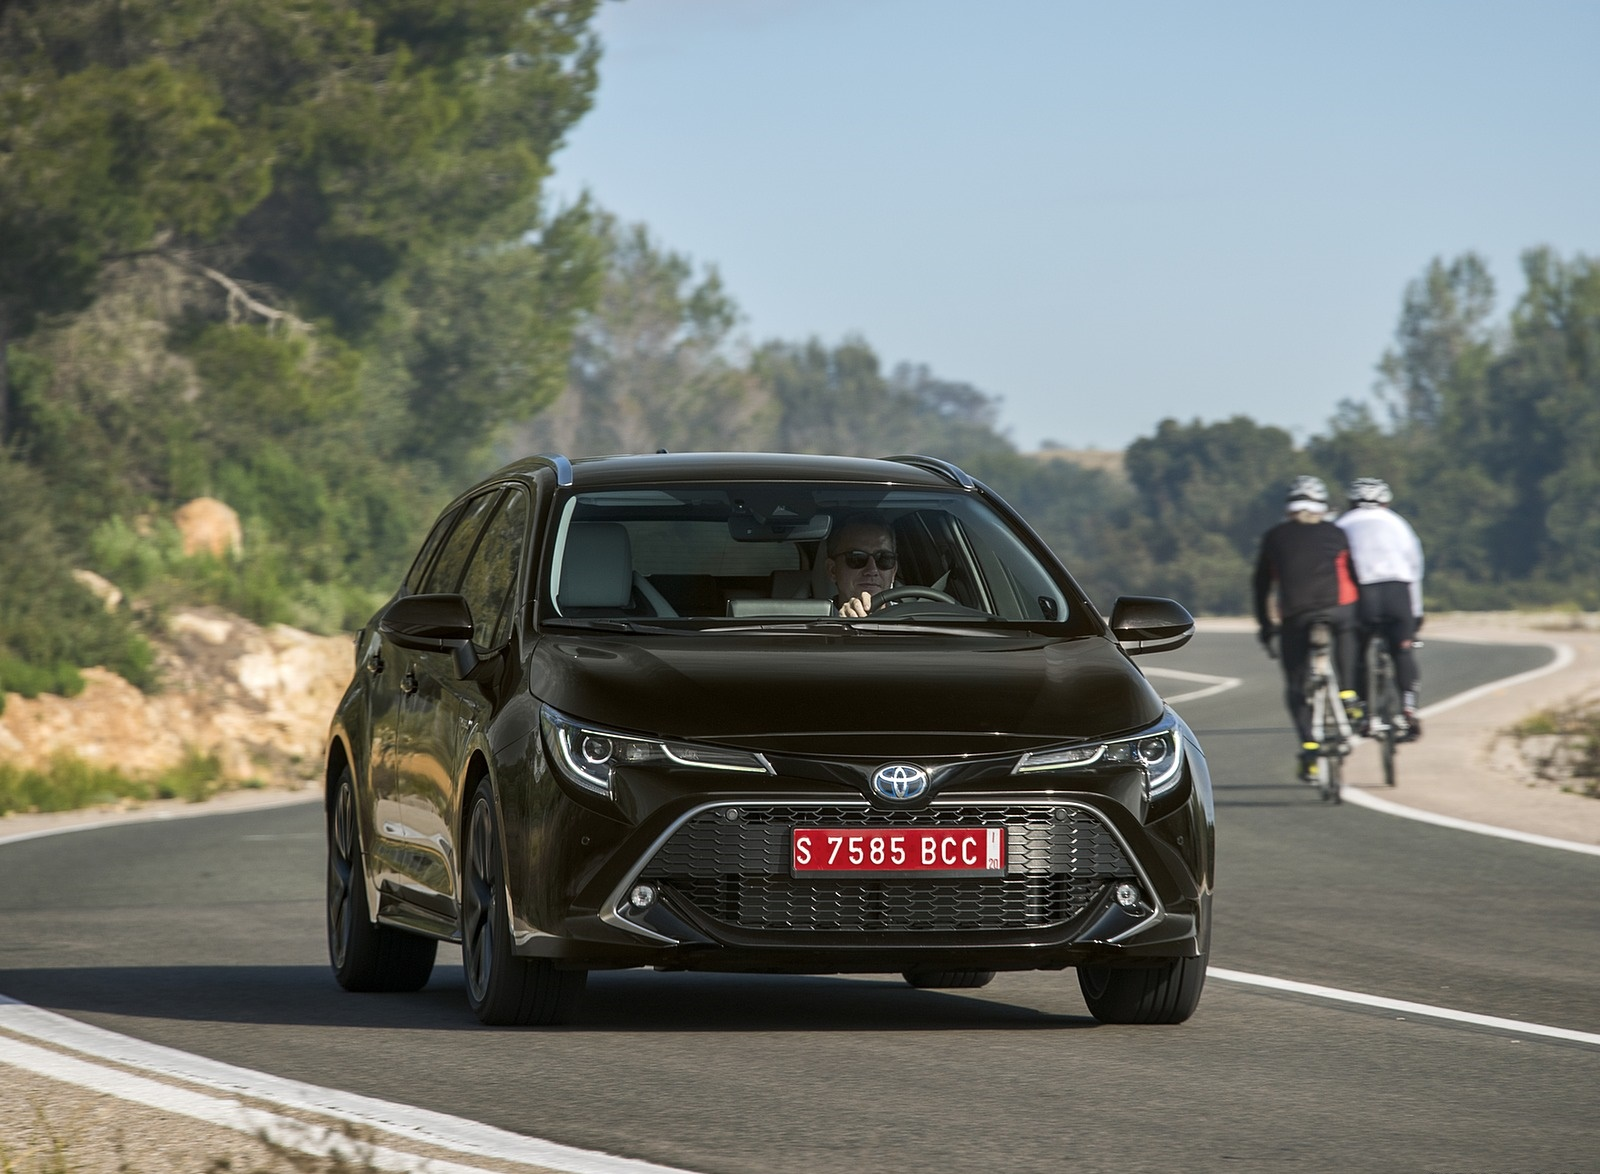 2019 Toyota Corolla Touring Sports 2.0L Brown (EU-Spec) Front Wallpaper (15)